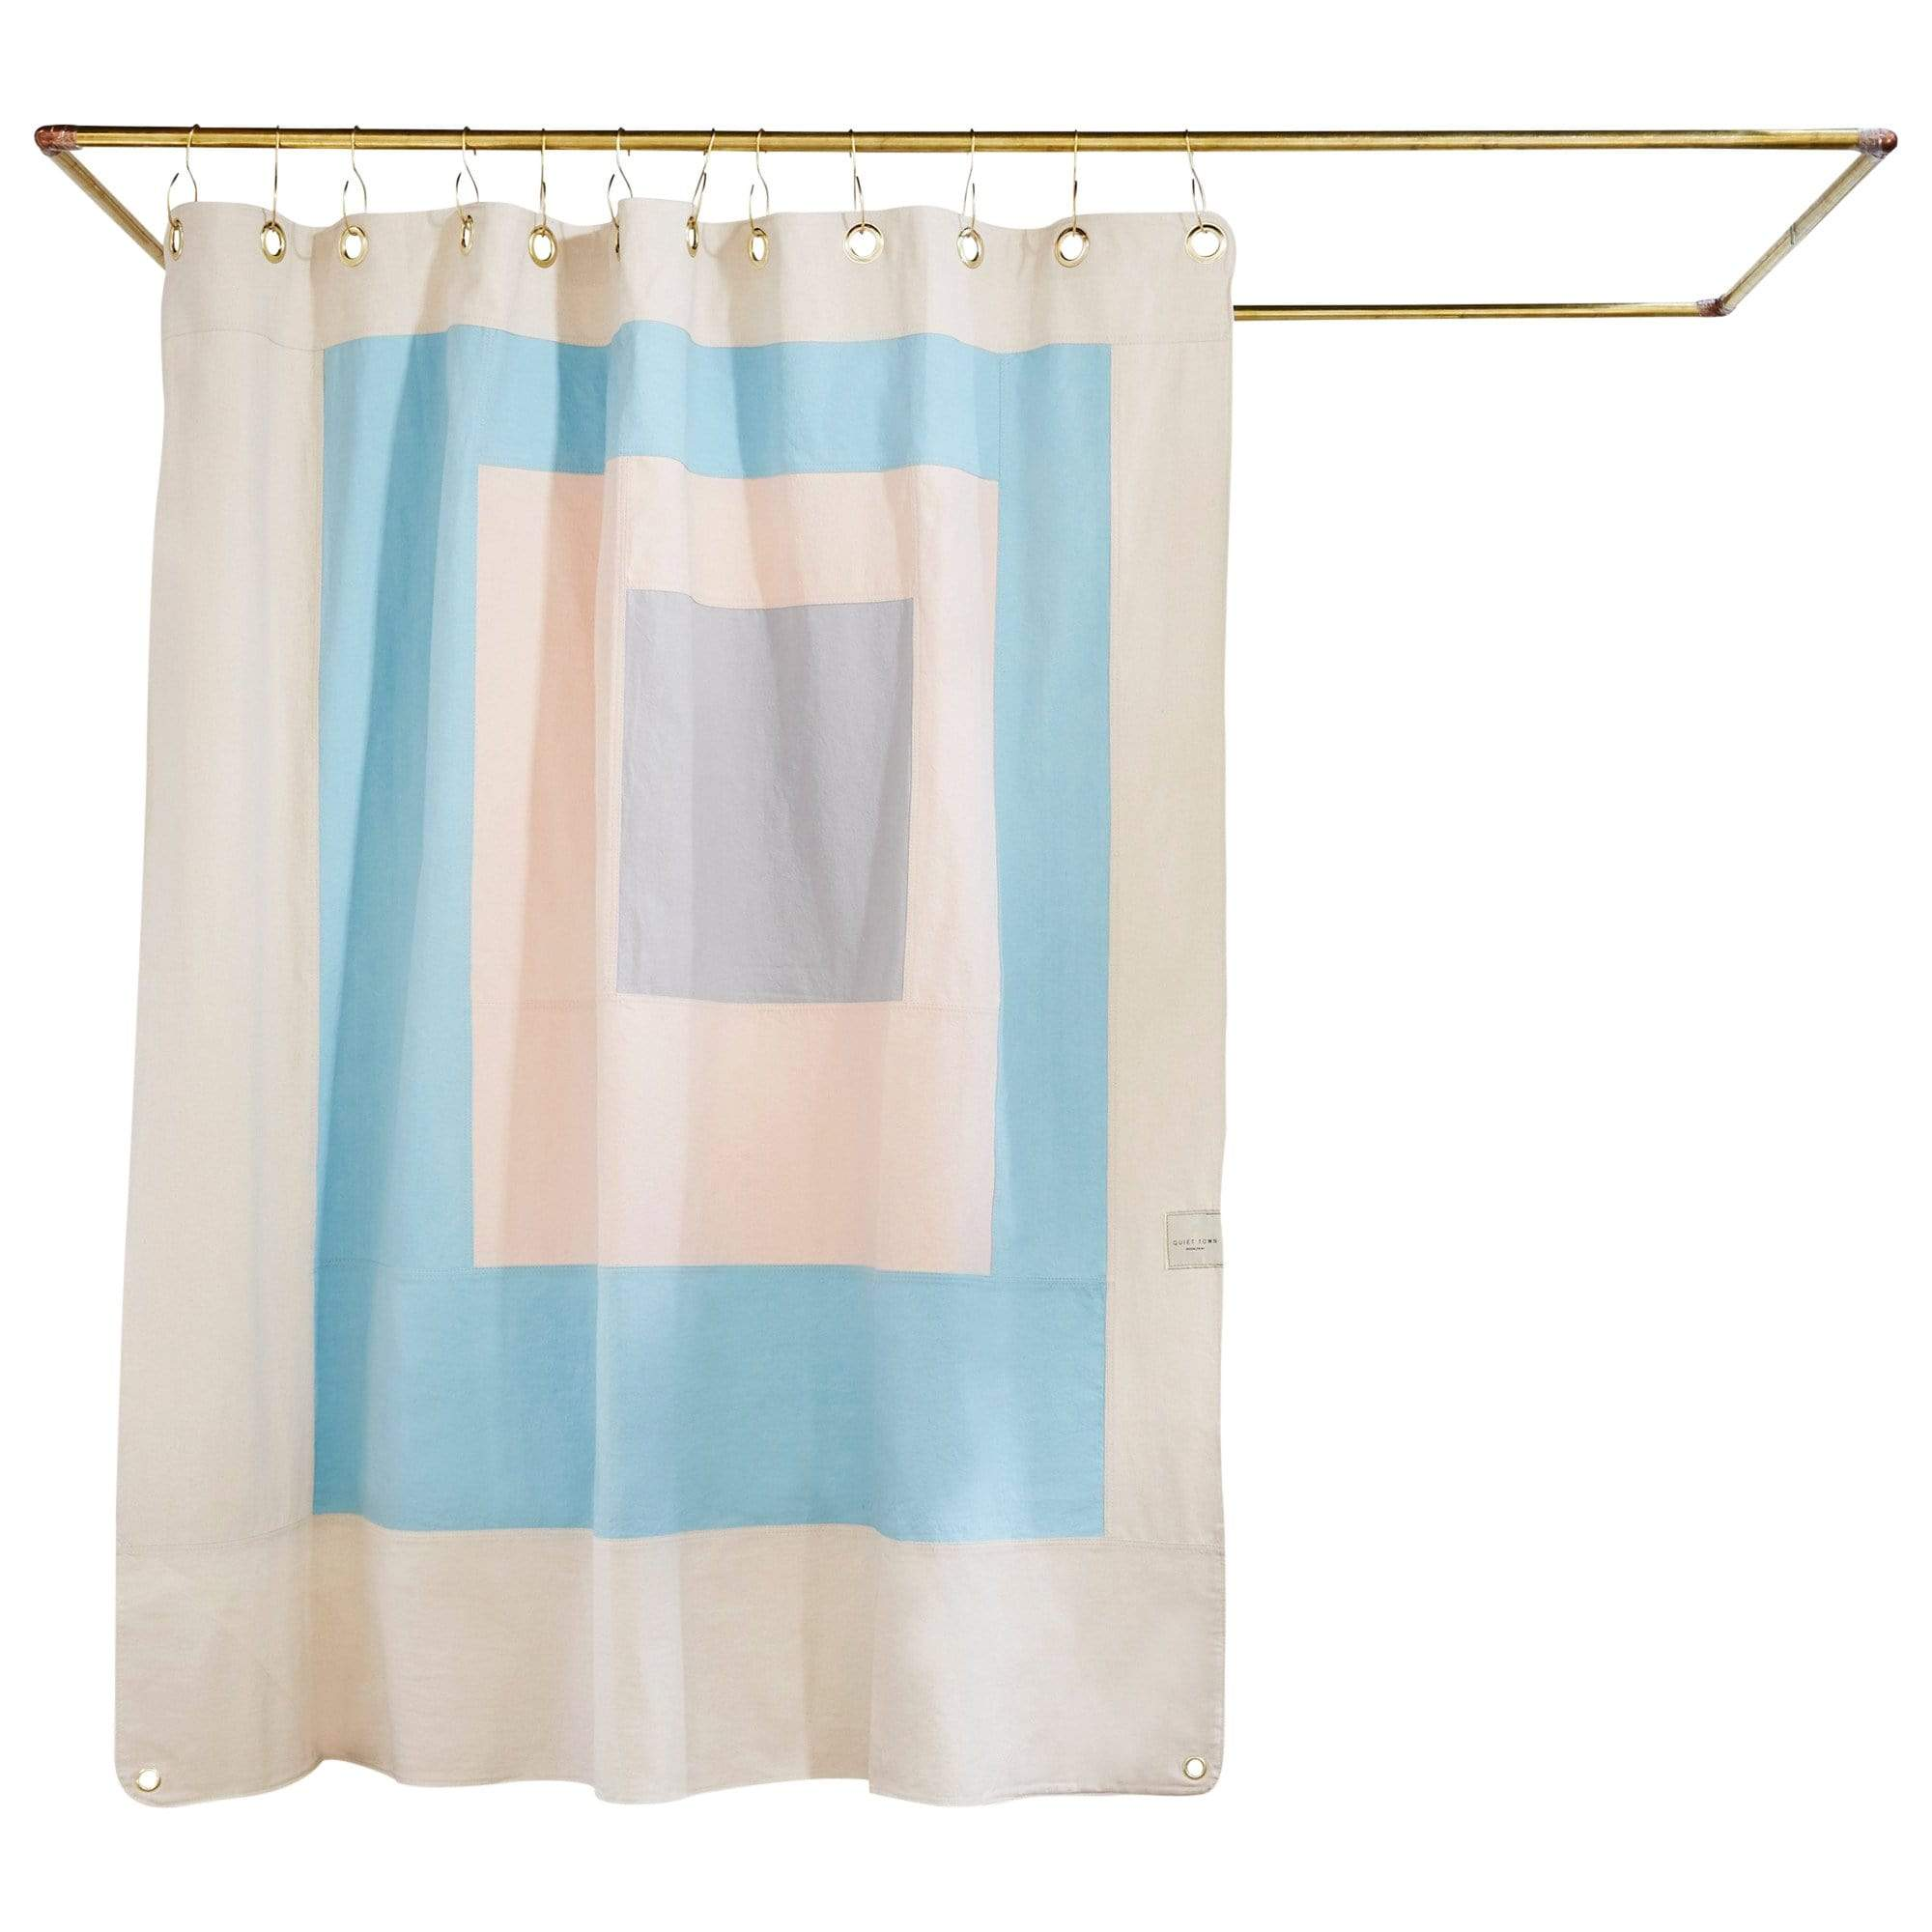 Quiet Town Bath Mats + Curtains Marfa Sky